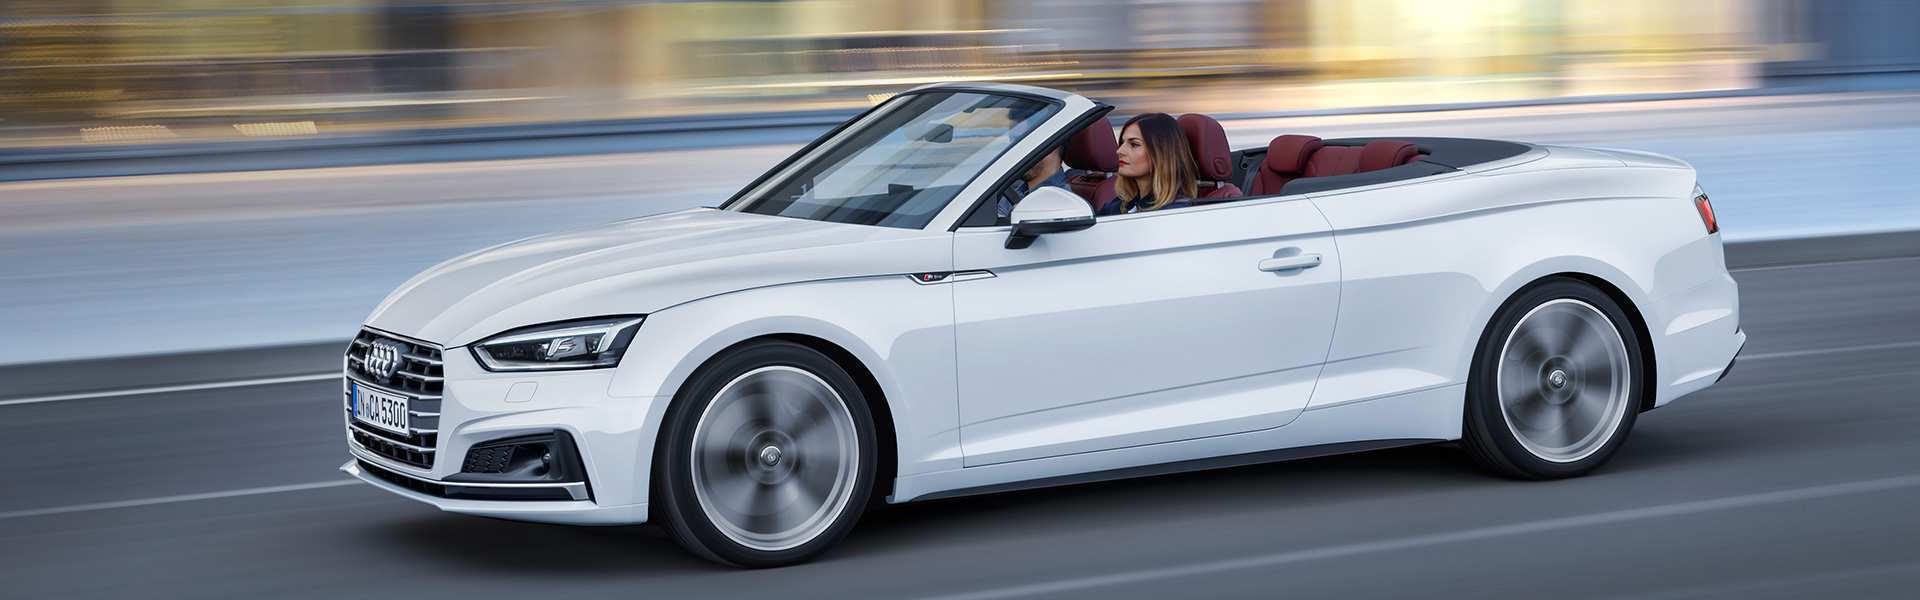 20 All New 2020 Audi S5 Cabriolet Research New